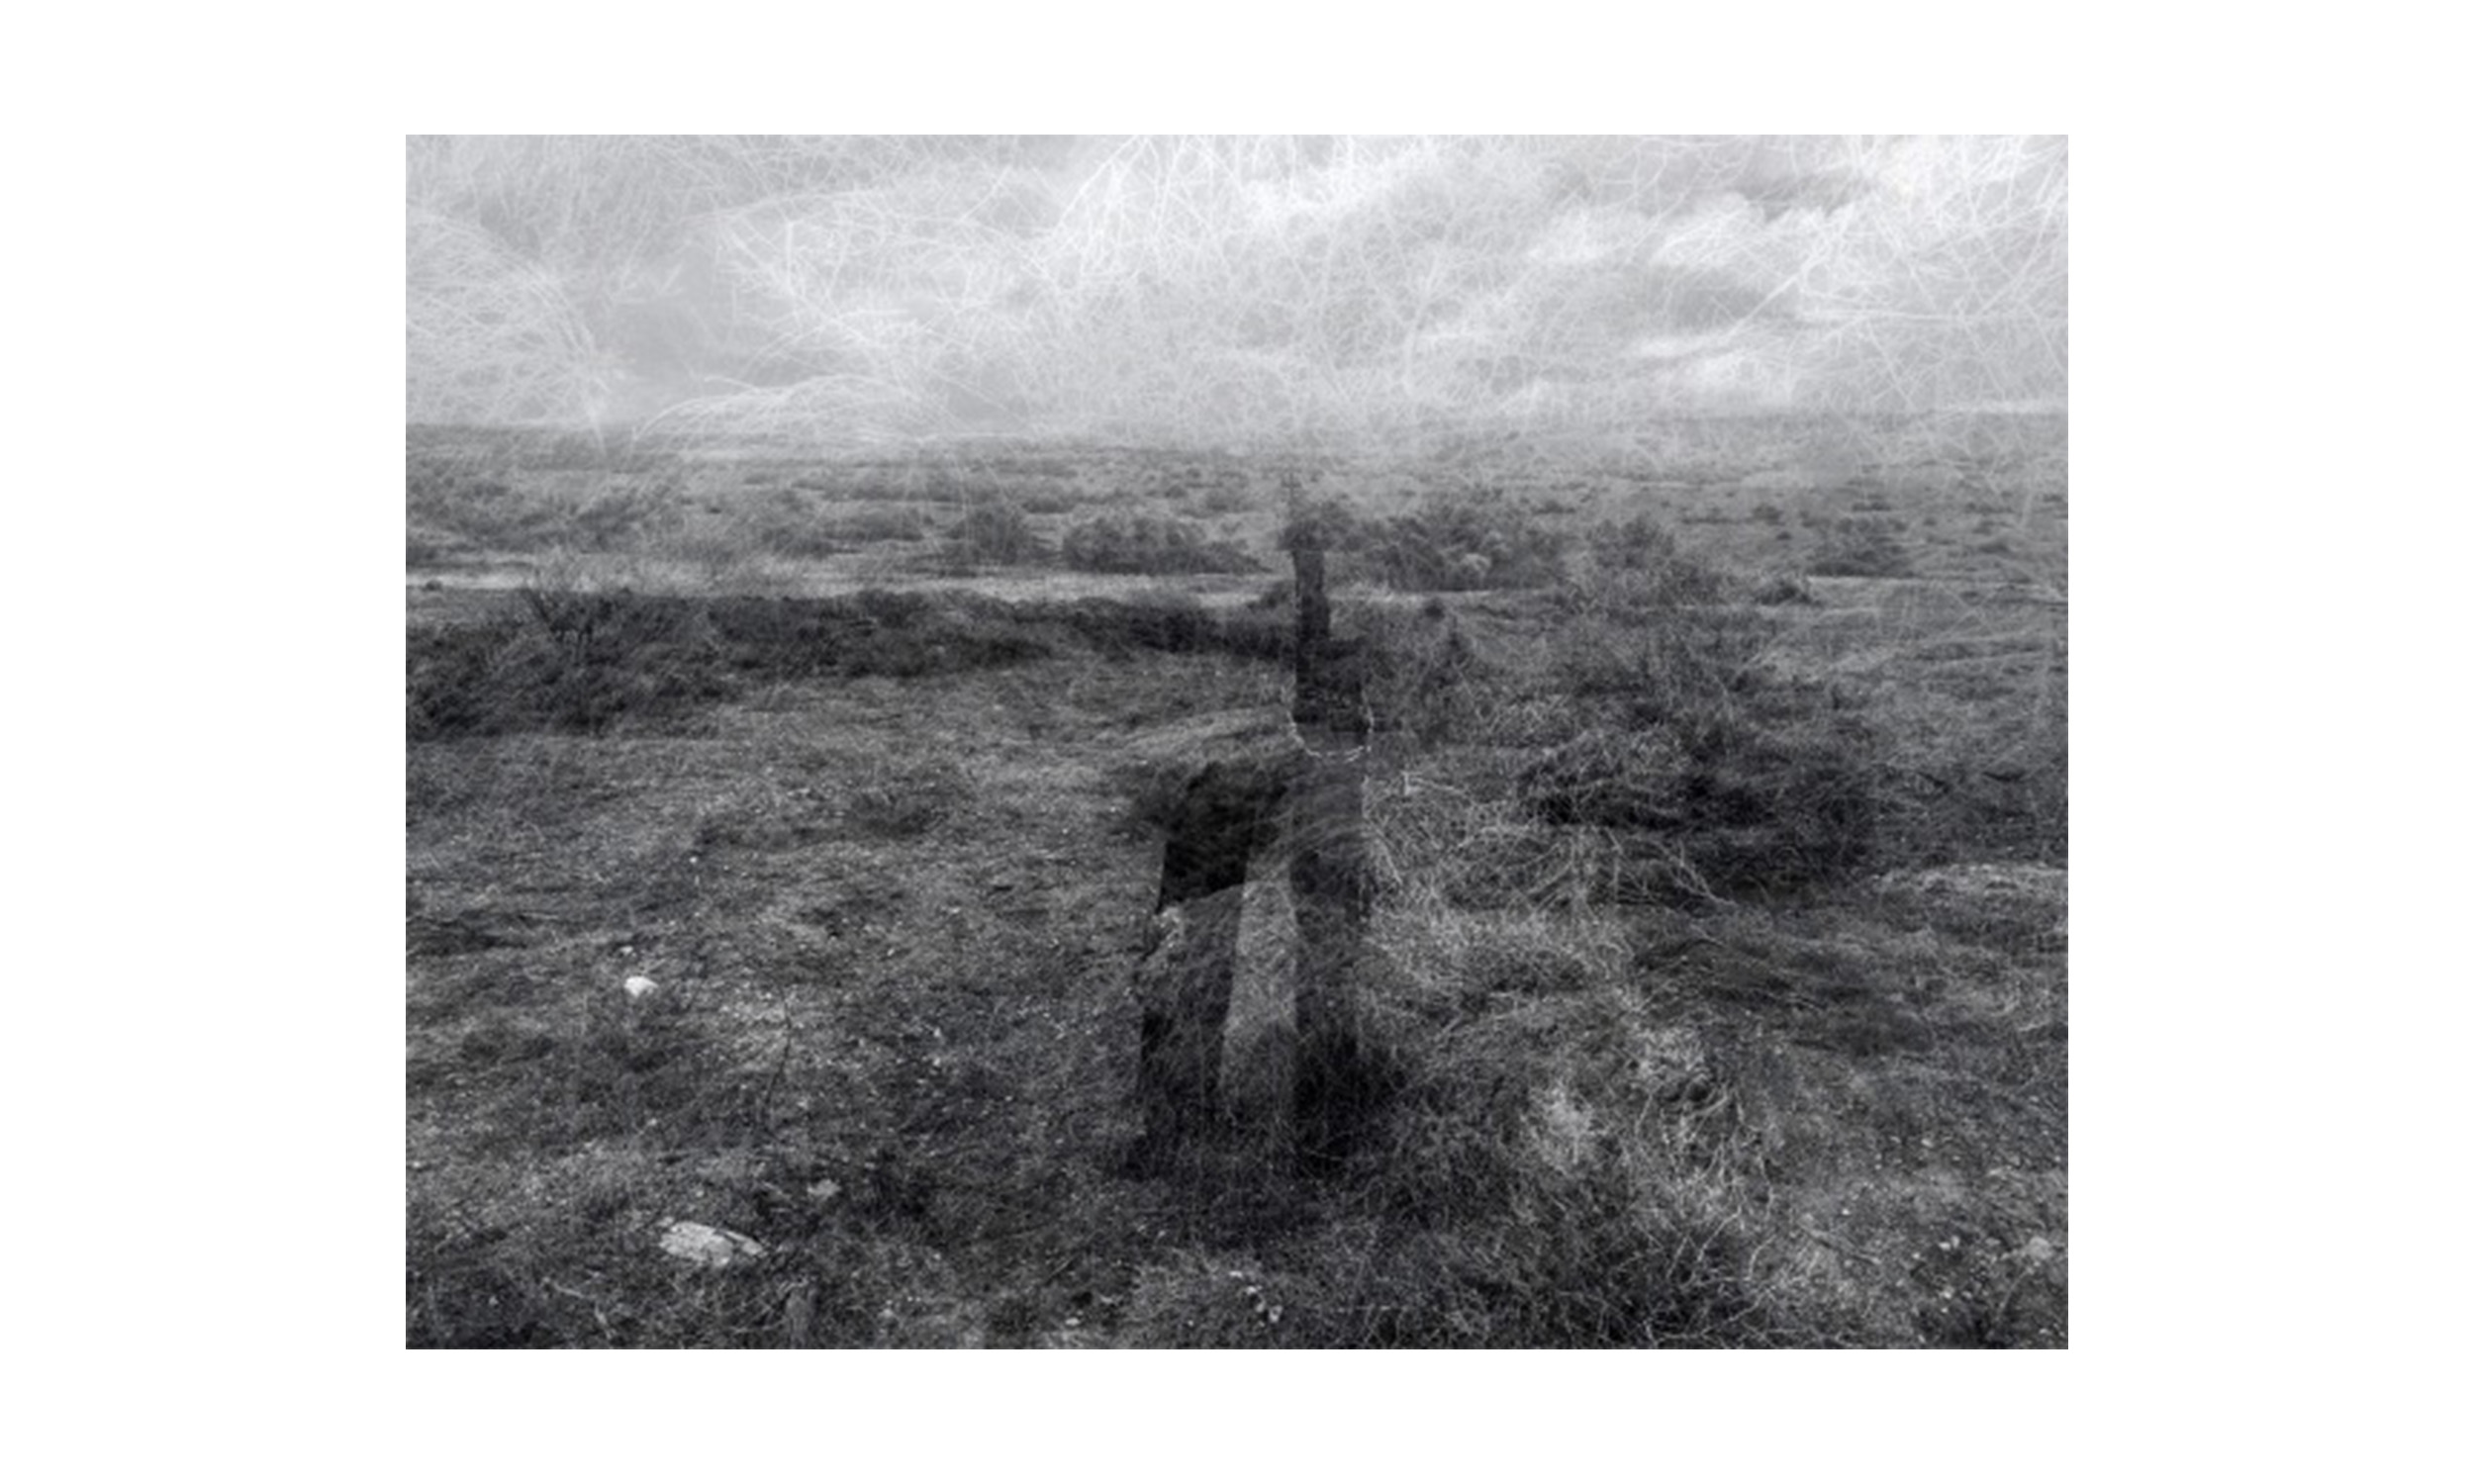 Fields: Warn,  archival inkjet print, 18 x 24 inches, framed, $525    Contact us for purchase